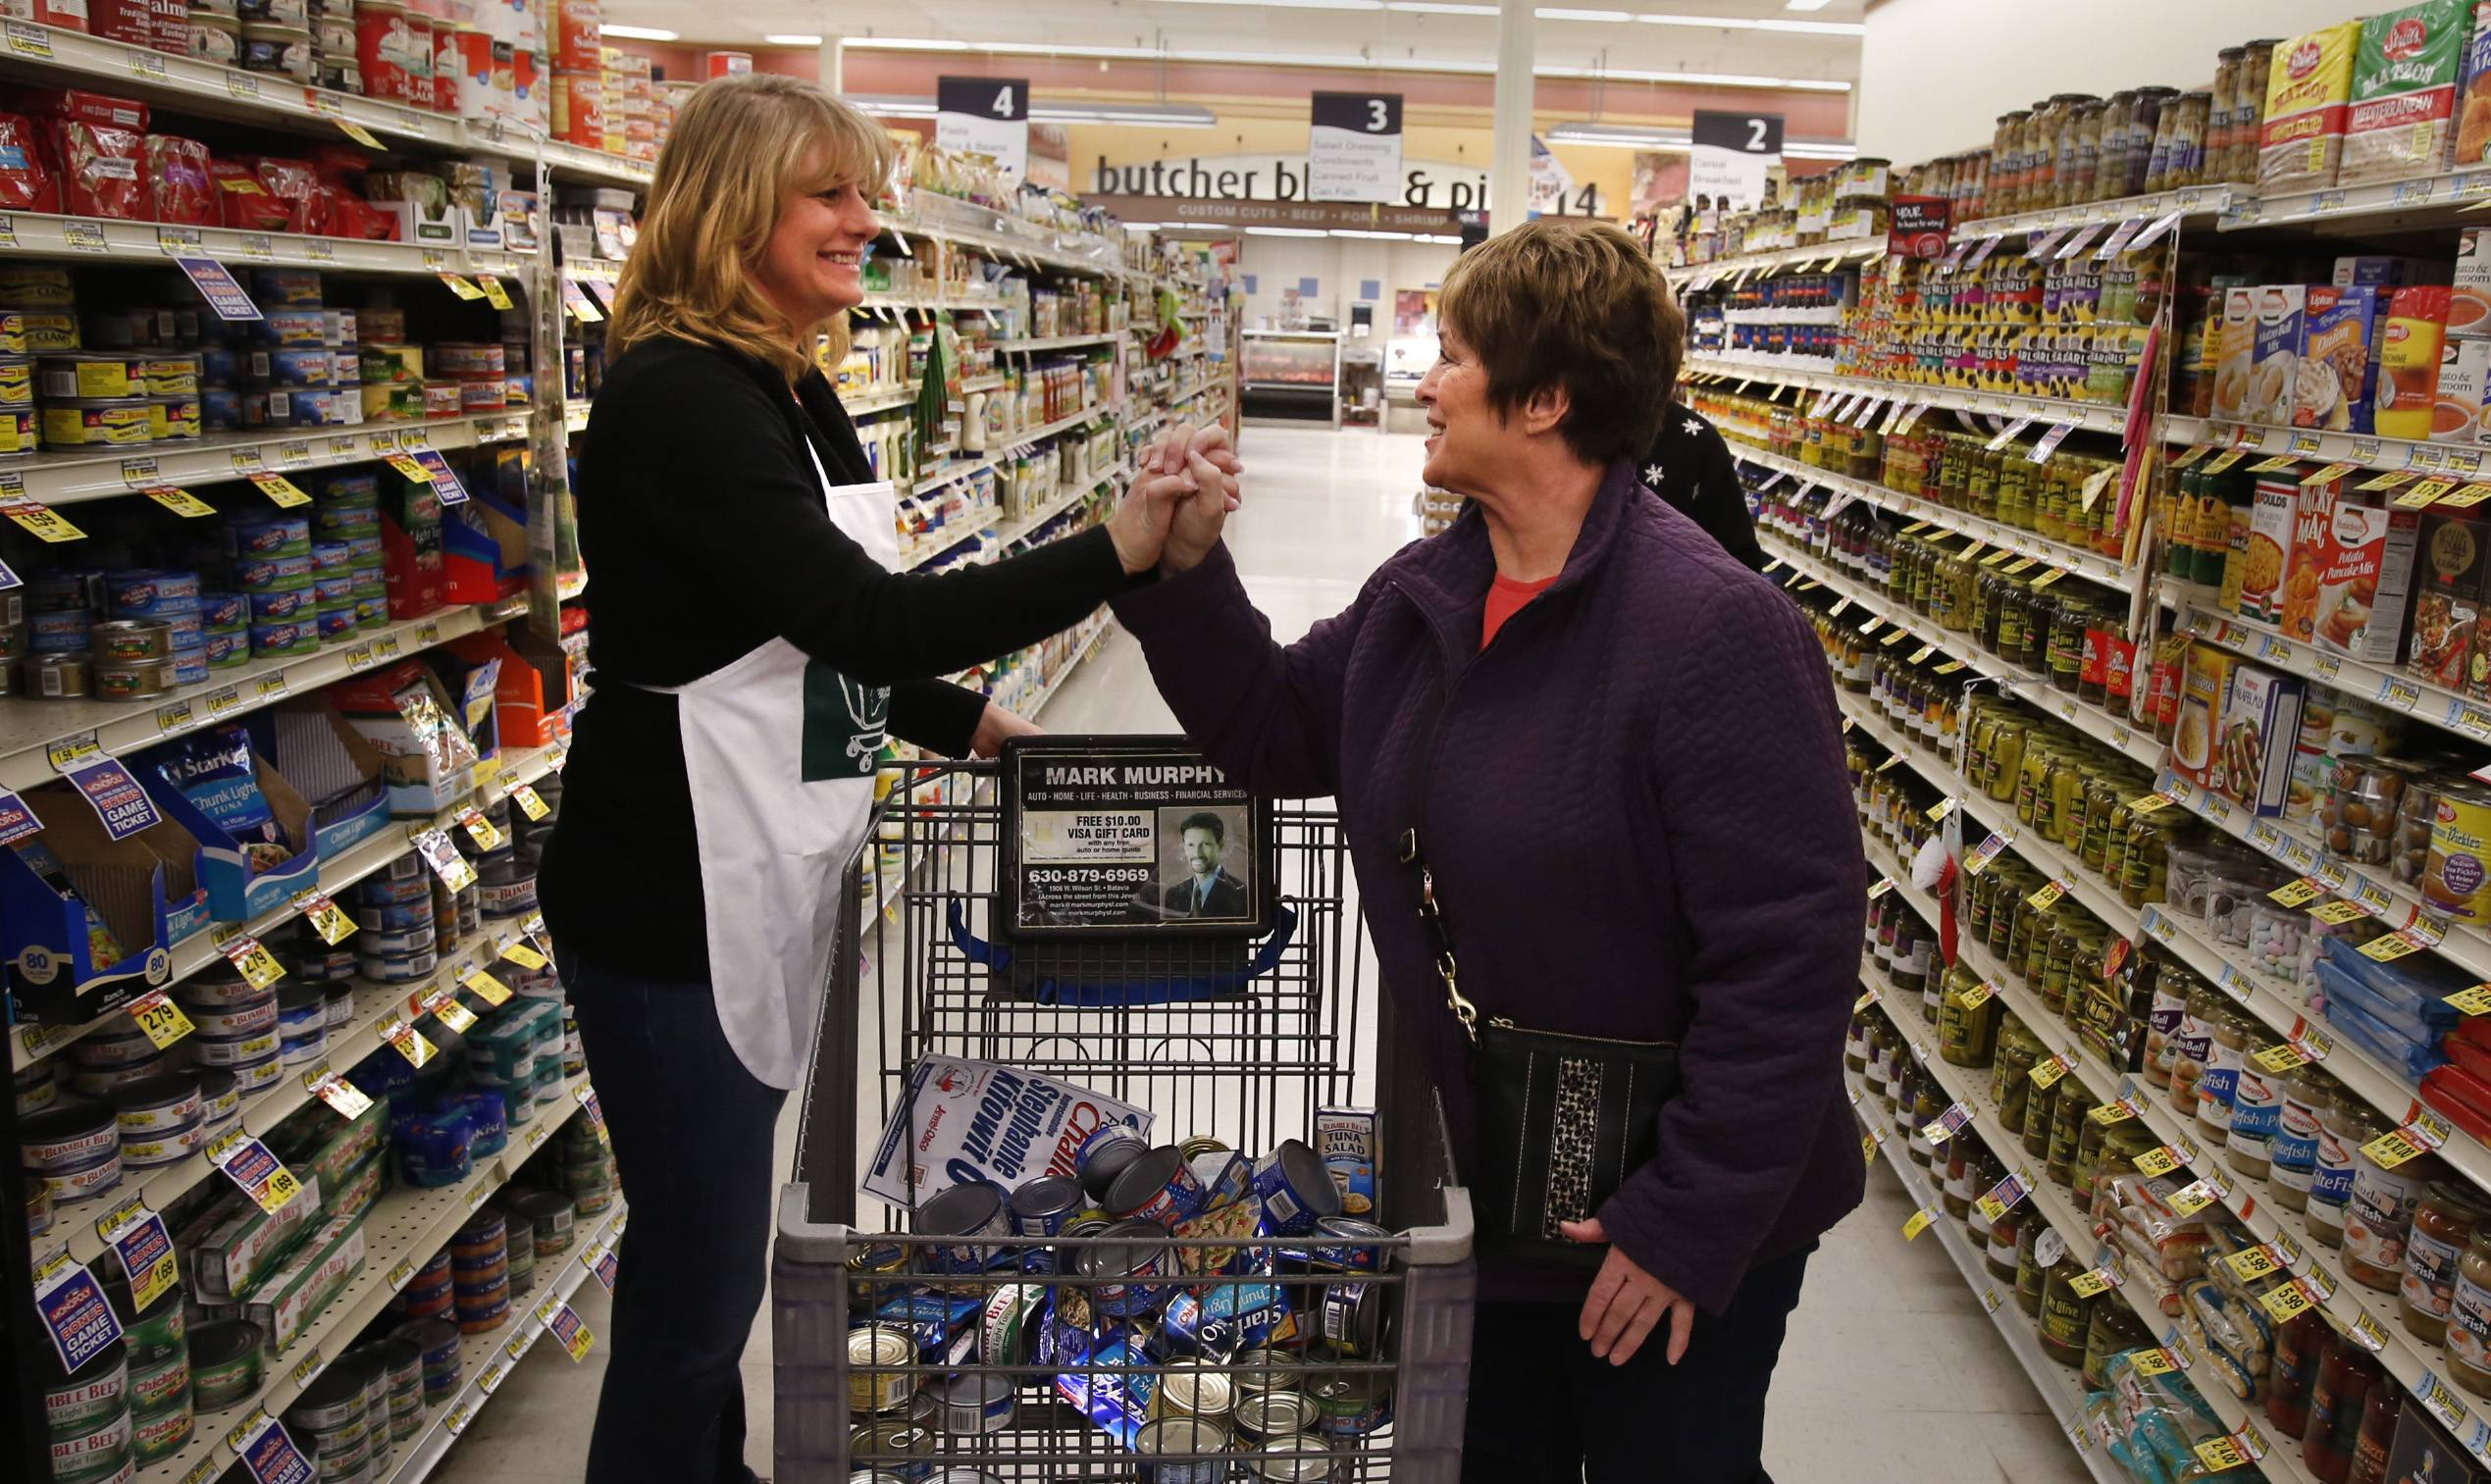 State Rep. Stephanie Kifowit, left, congratulates her shopping assistant, Bonnie Wegman of the Marie Wilkinson Food Pantry, after Kifowit's shopping spree time expired Monday at the Jewel-Osco in Batavia.